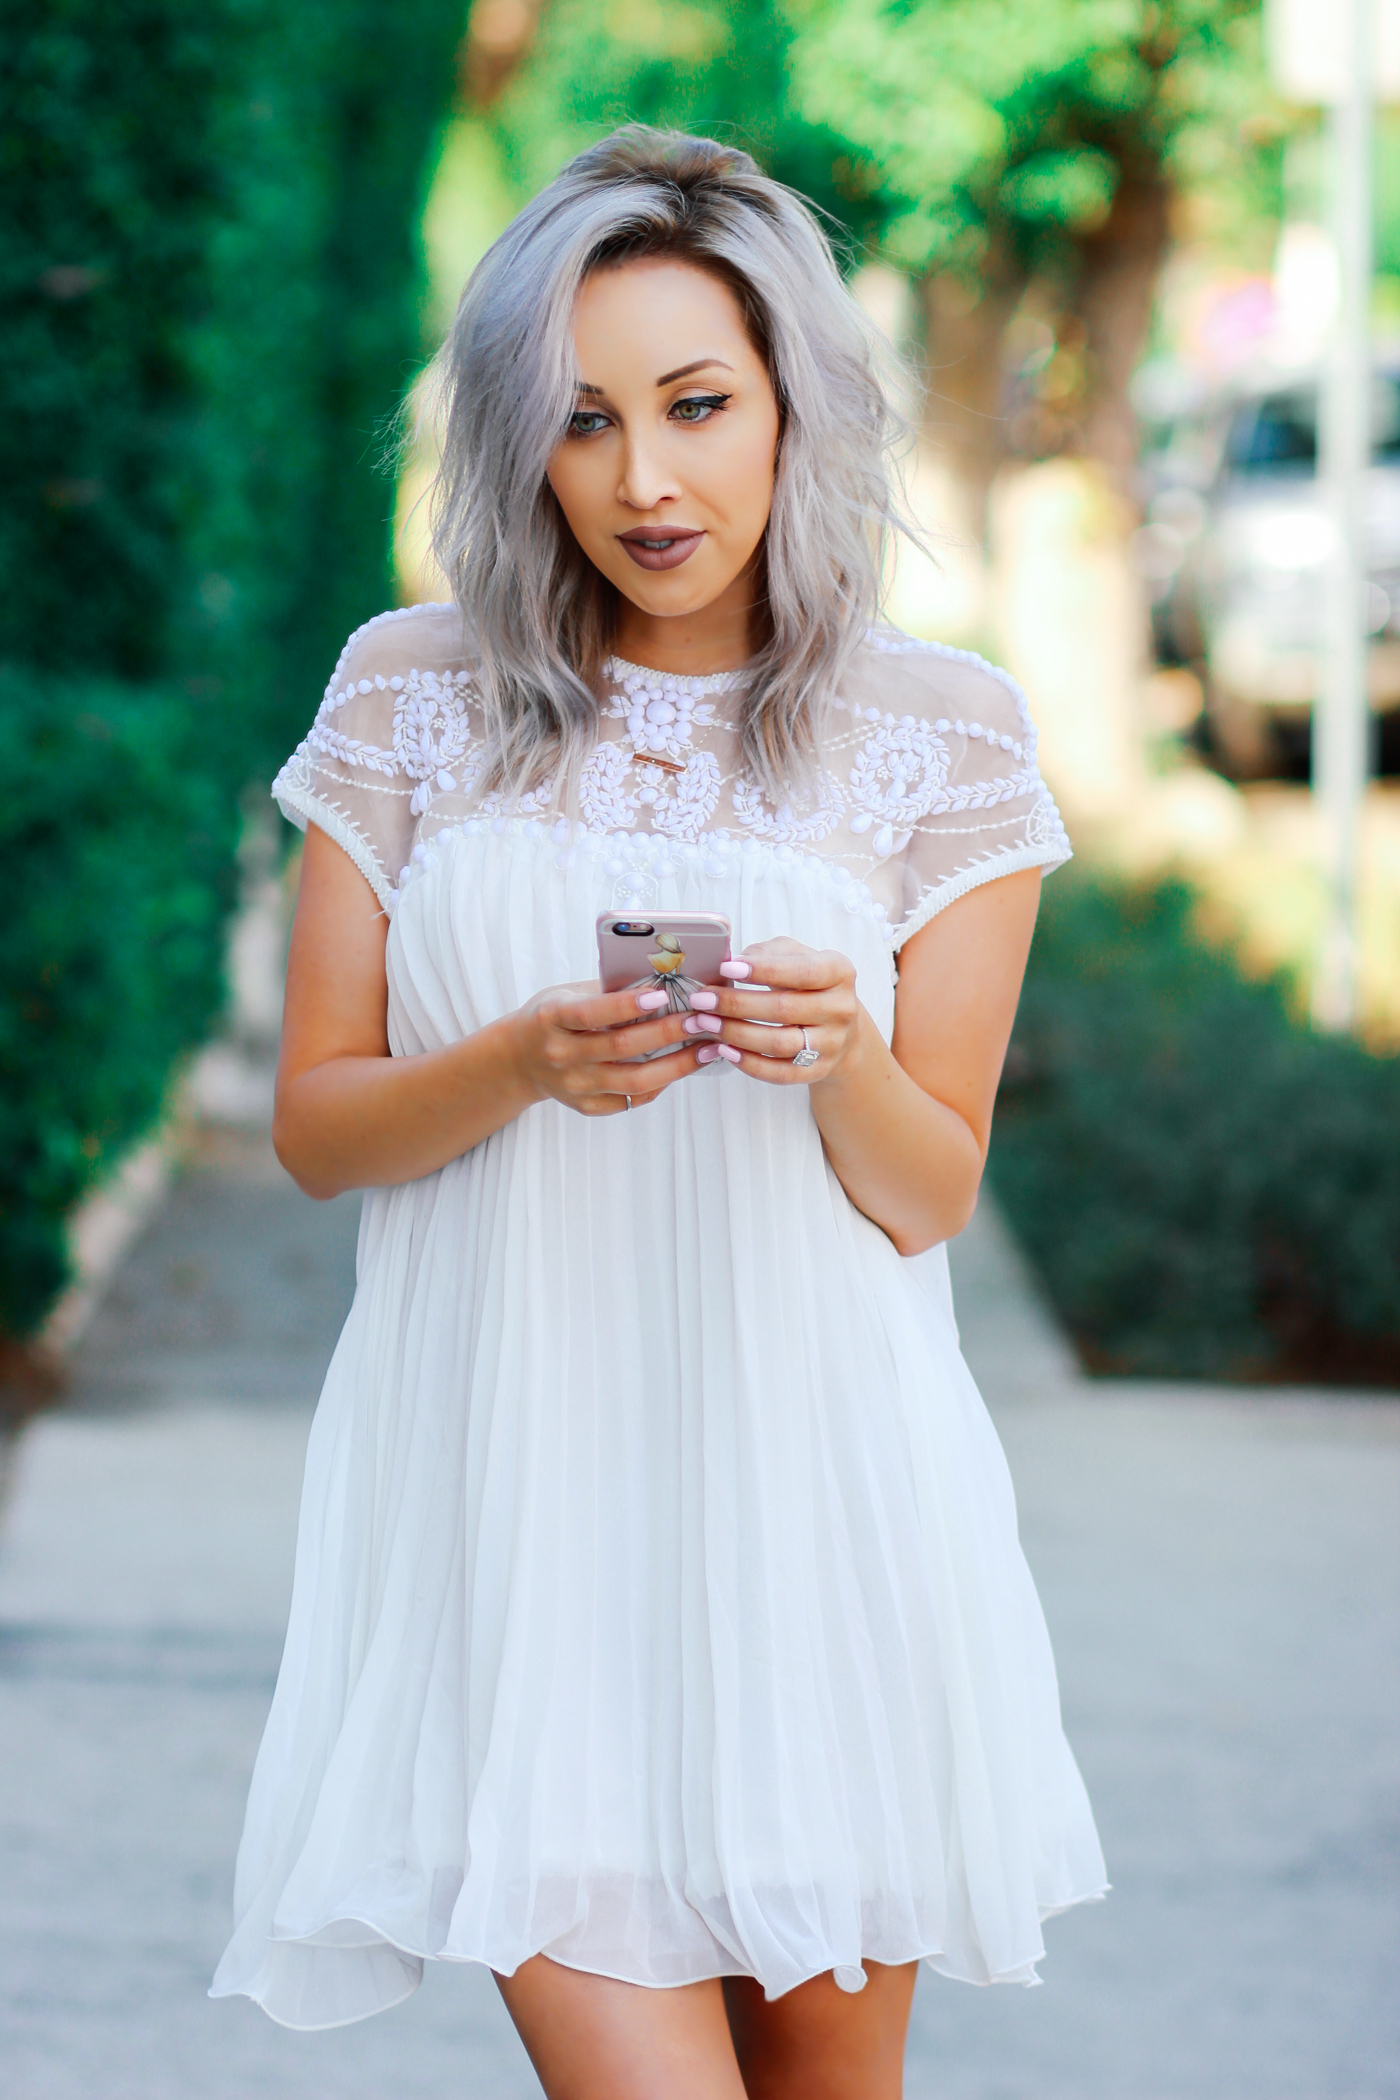 Blondie in the City | White Beaded BabyDoll Dress @Chicwish | Bridal Shower Dress | Bachelorette Party Dress